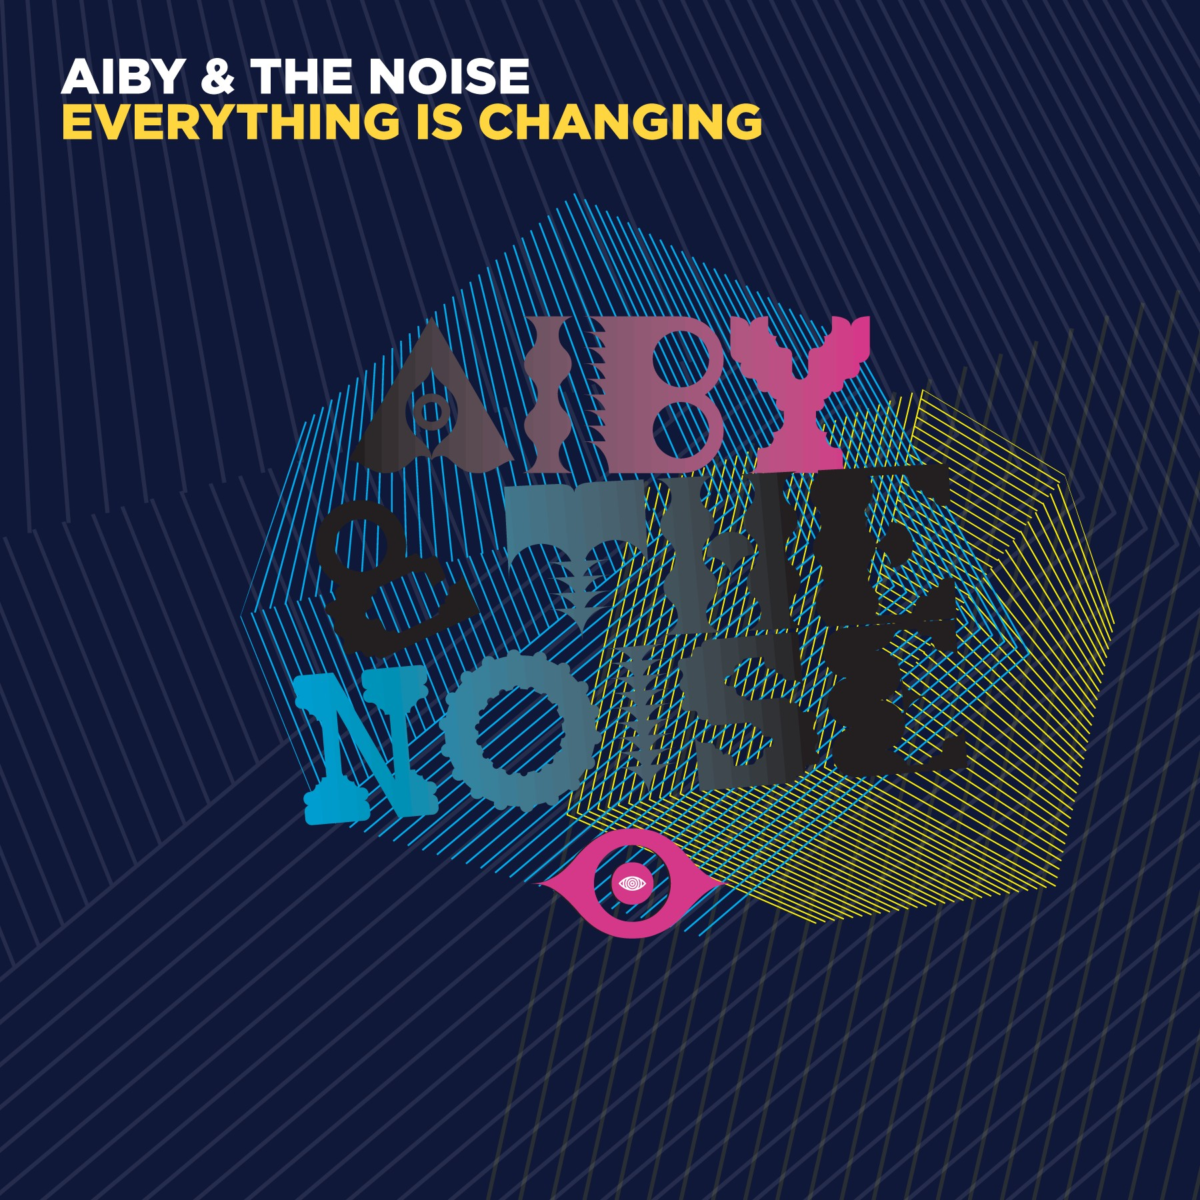 VIZ022 Aiby & The Noise - Everything Is Changing